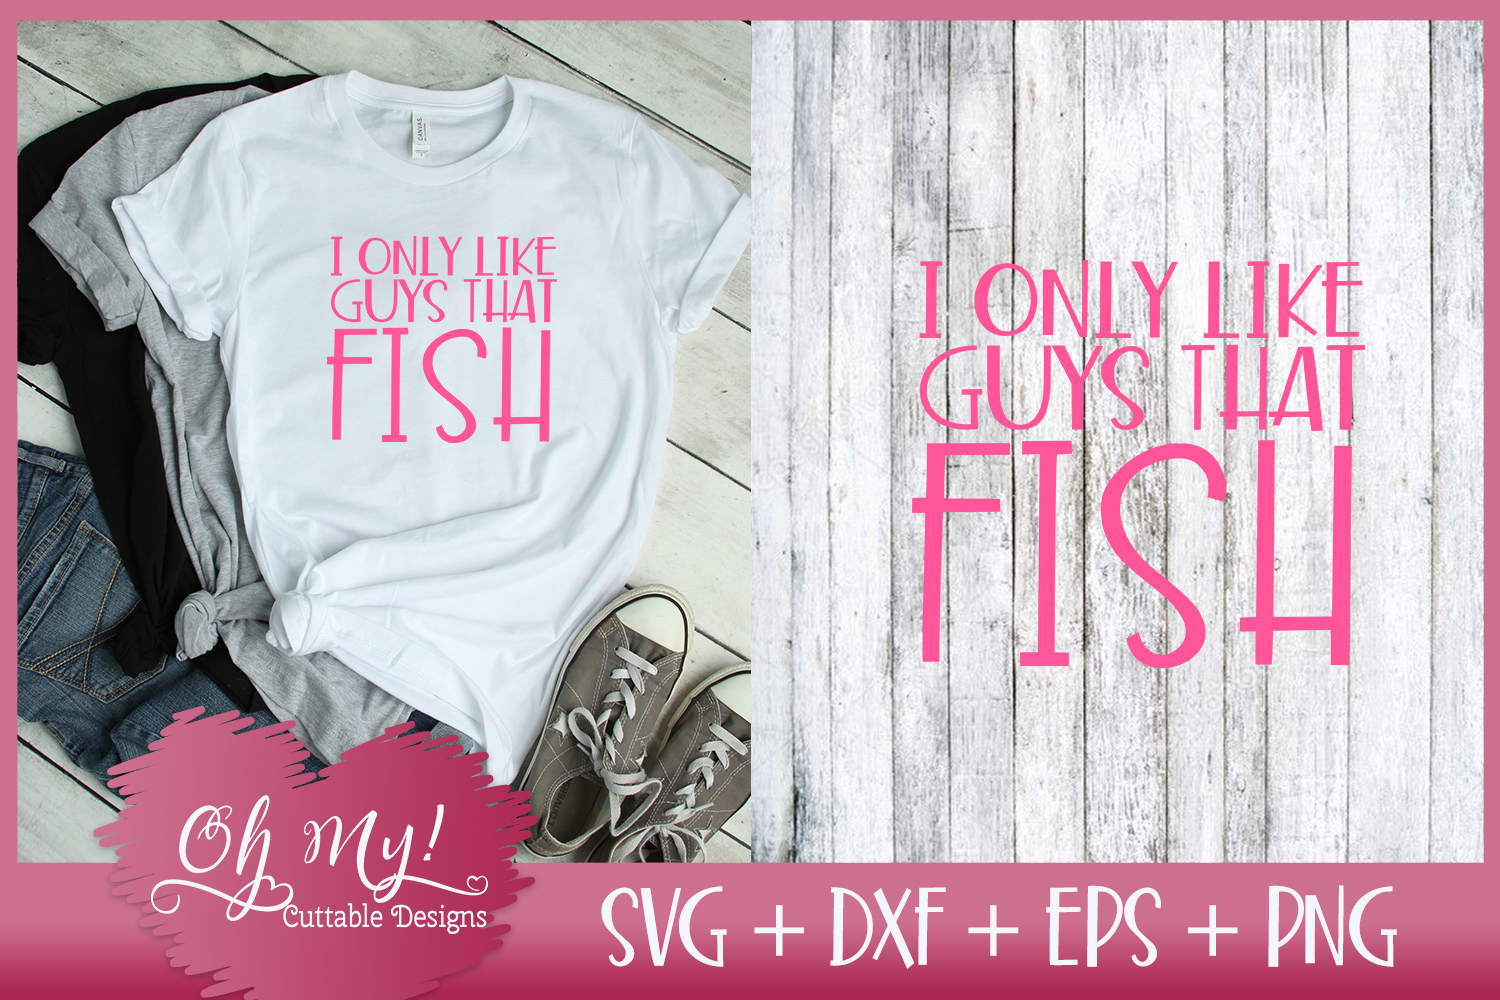 I Only Like Guys That Fish - SVG DXF EPS PNG Cutting example image 1